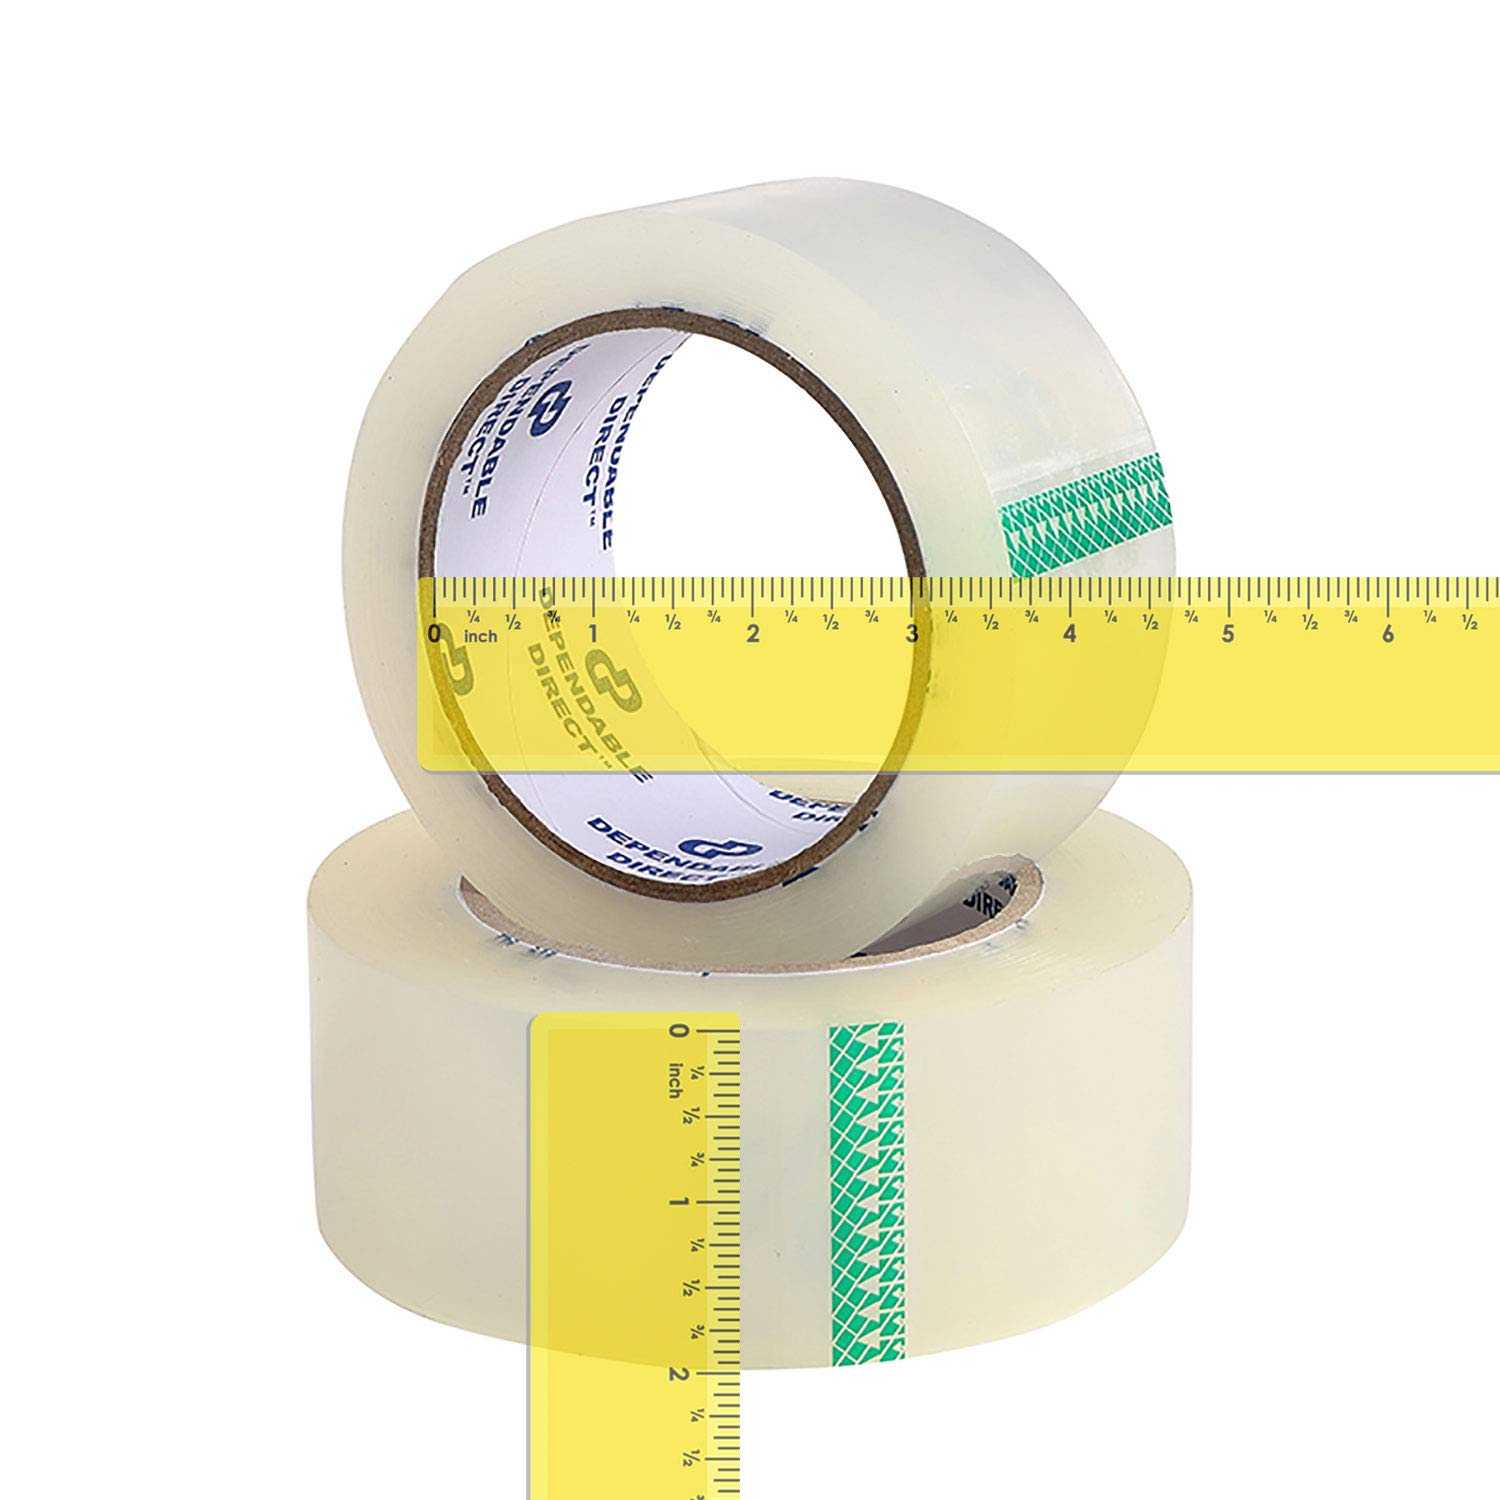 Industrial Grade Clear Packing Tape (72 Rolls) - 110 Yards per Roll - 2'' Wide x 2.7 mil Thick, Acrylic Adhesive Heavy Duty Tape for Box Office Moving Packaging Shipping by Dependable Direct (Image #2)